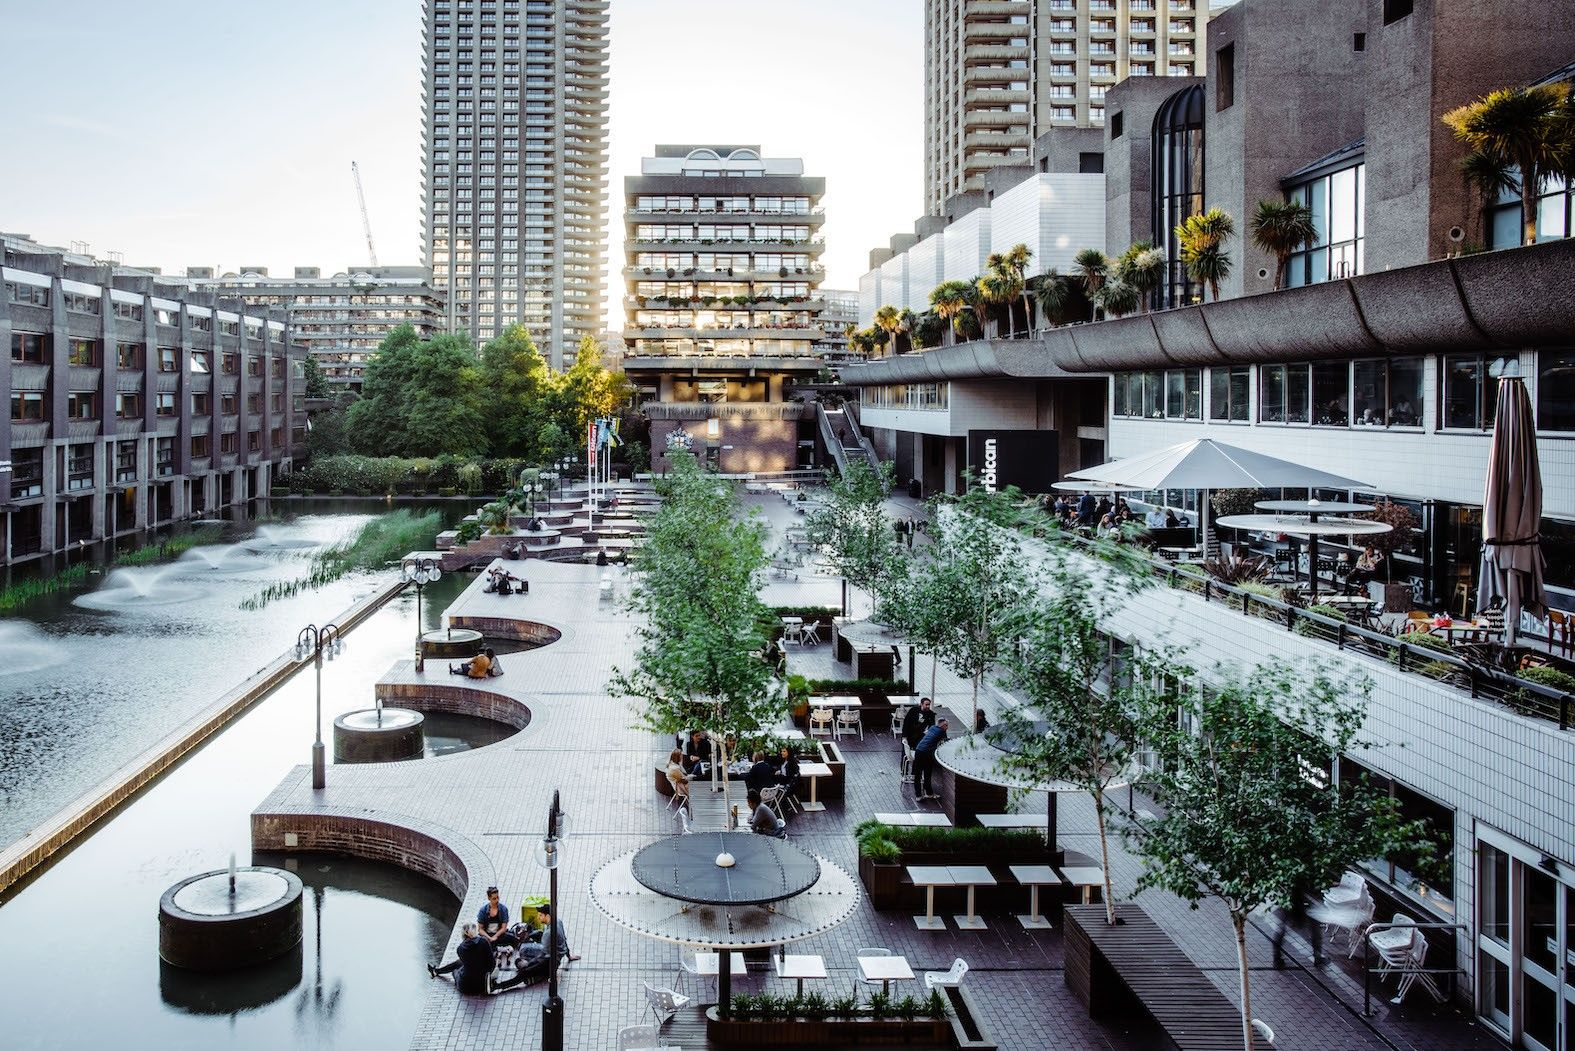 Barbican Business Events sees more than 50% increase in demand for filming and photo shoots